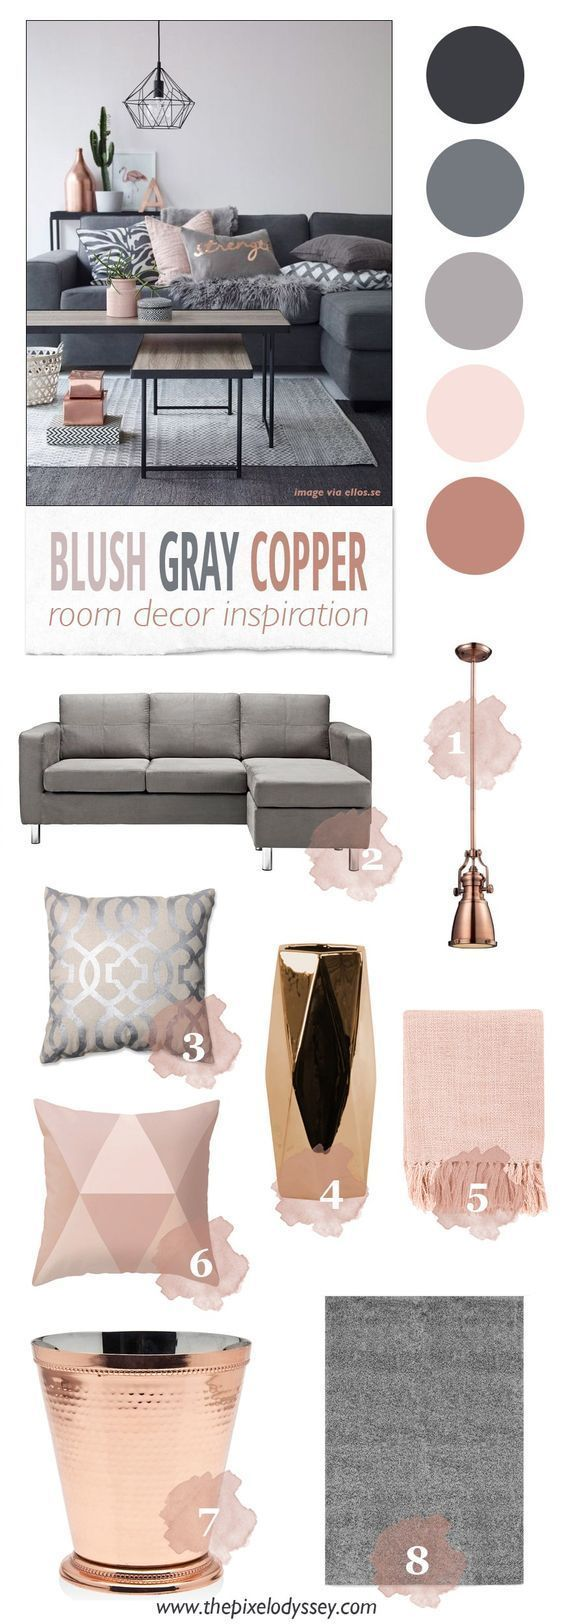 Blush Gray Copper Room Decor Inspiration - The Pixel Odyssey The Stacey Sauer Team, Stacey Sauer, Flower Mound, Real Estate, North Dallas Metroplex homes for Sale, Home Values in North Dallas Metroplex, Listing your home, Buying a Home (scheduled via http://www.tailwindapp.com?utm_source=pinterest&utm_medium=twpin&utm_content=post92337609&utm_campaign=scheduler_attribution)